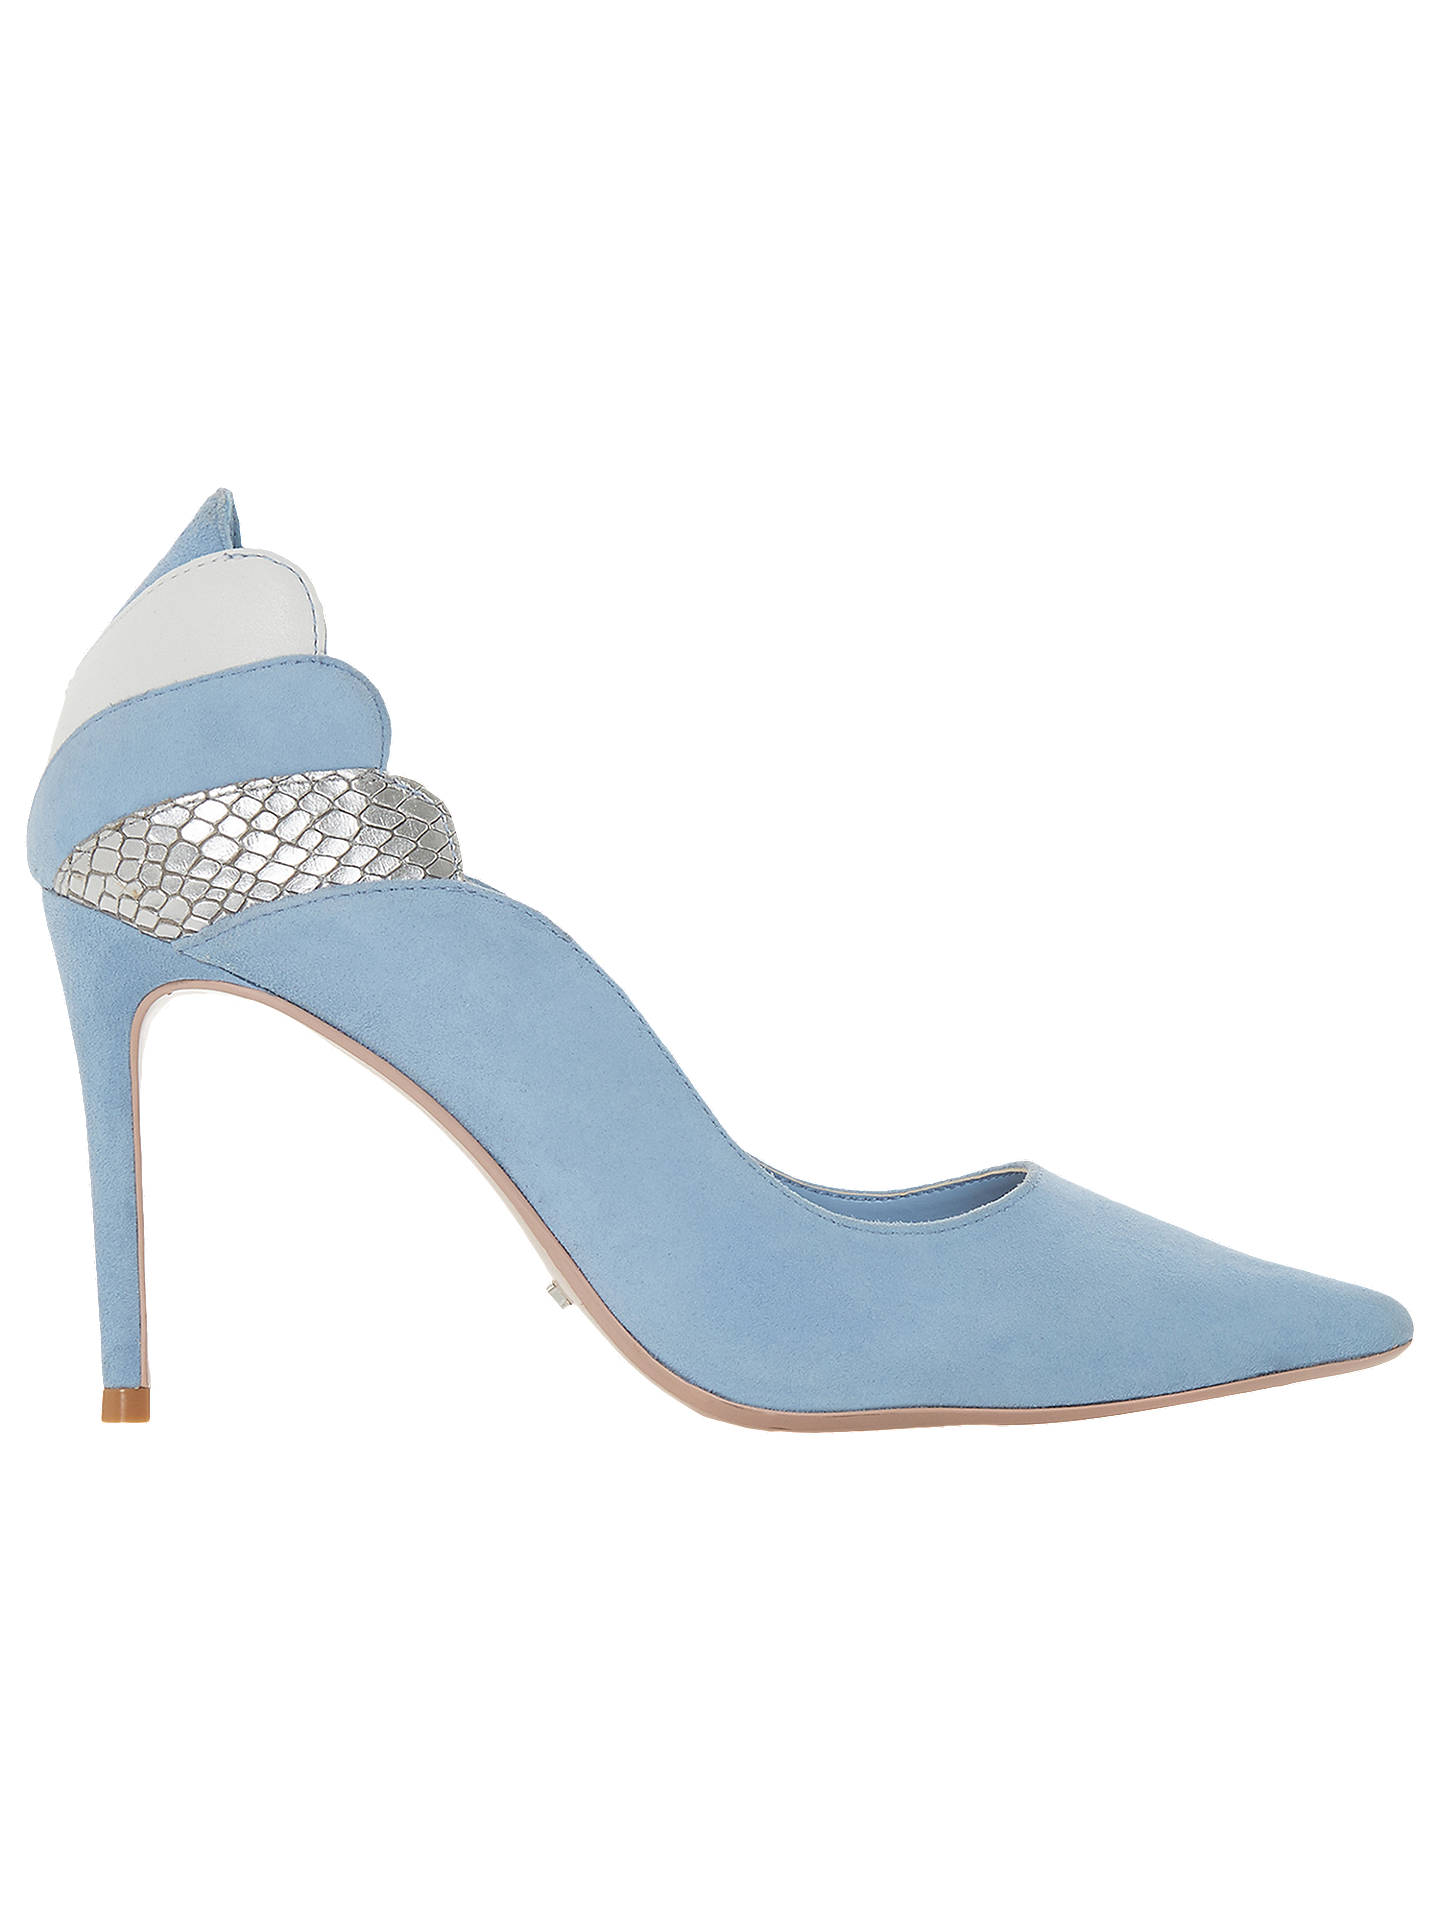 Buy Dune Aerielle Stiletto Heel Court Shoes, Blue Suede, 5 Online at johnlewis.com